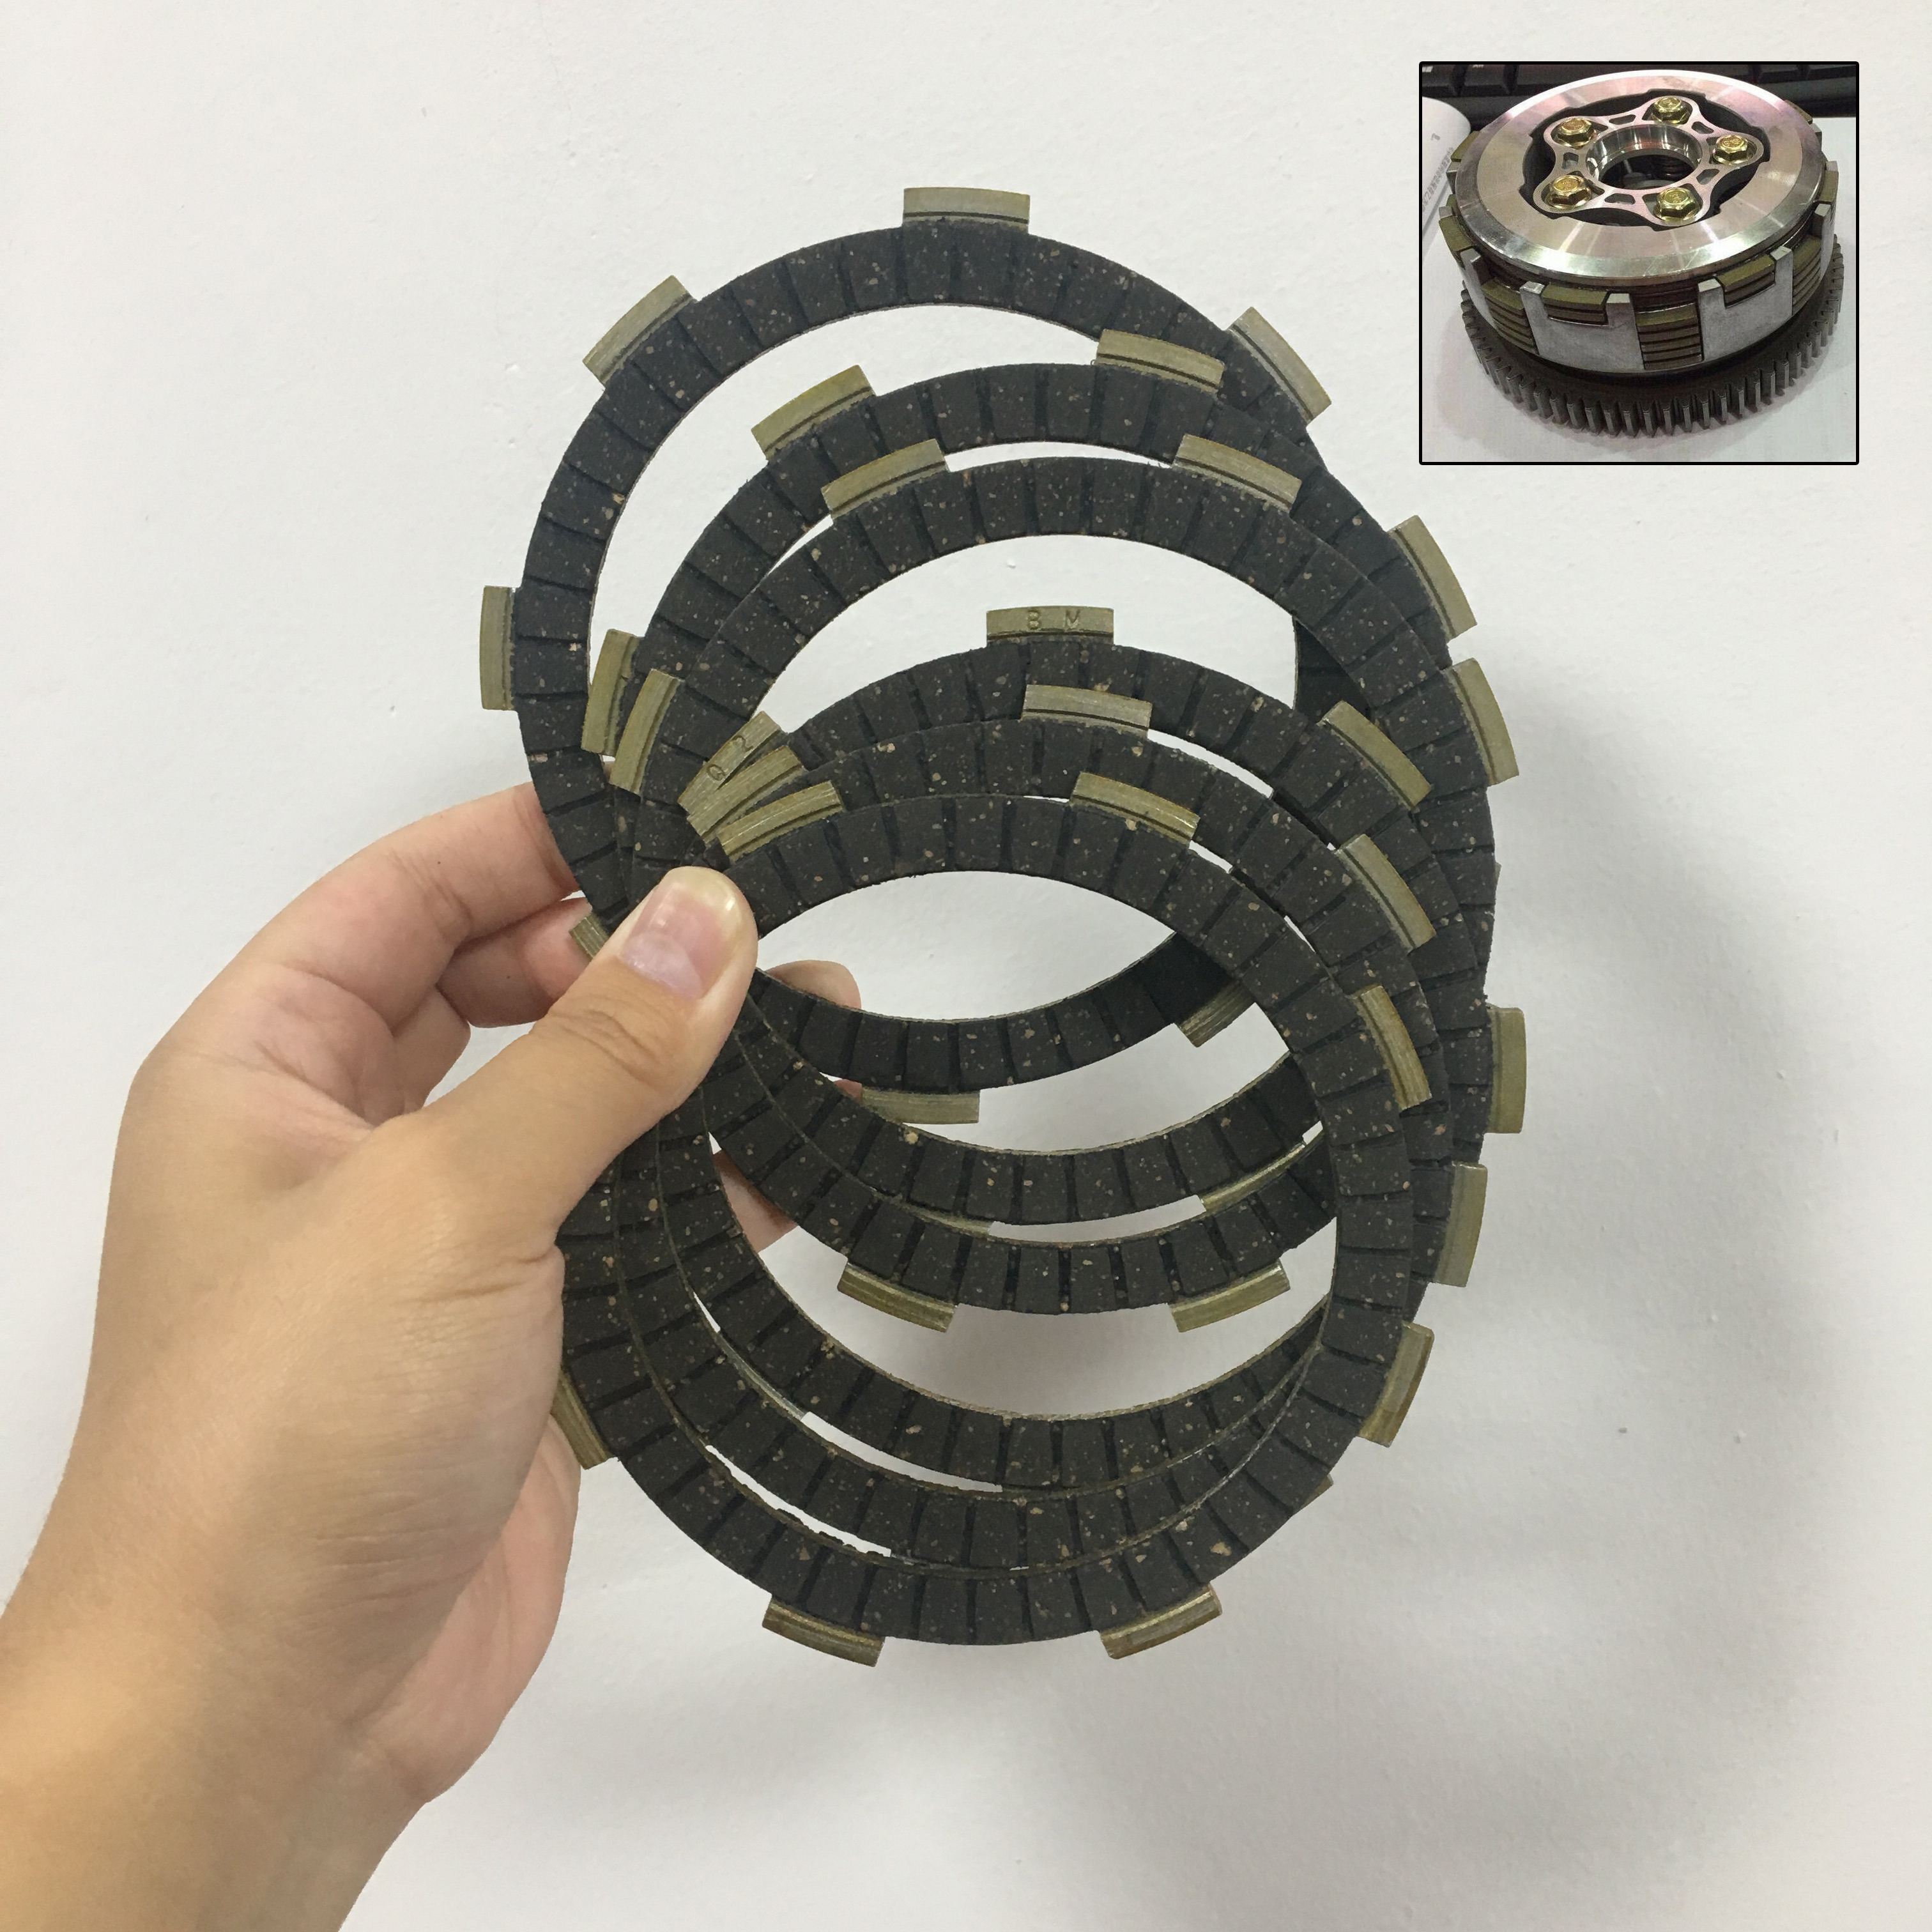 6Pcs Motorcycle Clutch Disc Friction Plate For Honda CG125 CG150 CG200 CG250 Clutch Pad Motorbike Parts Vintage Retro Street